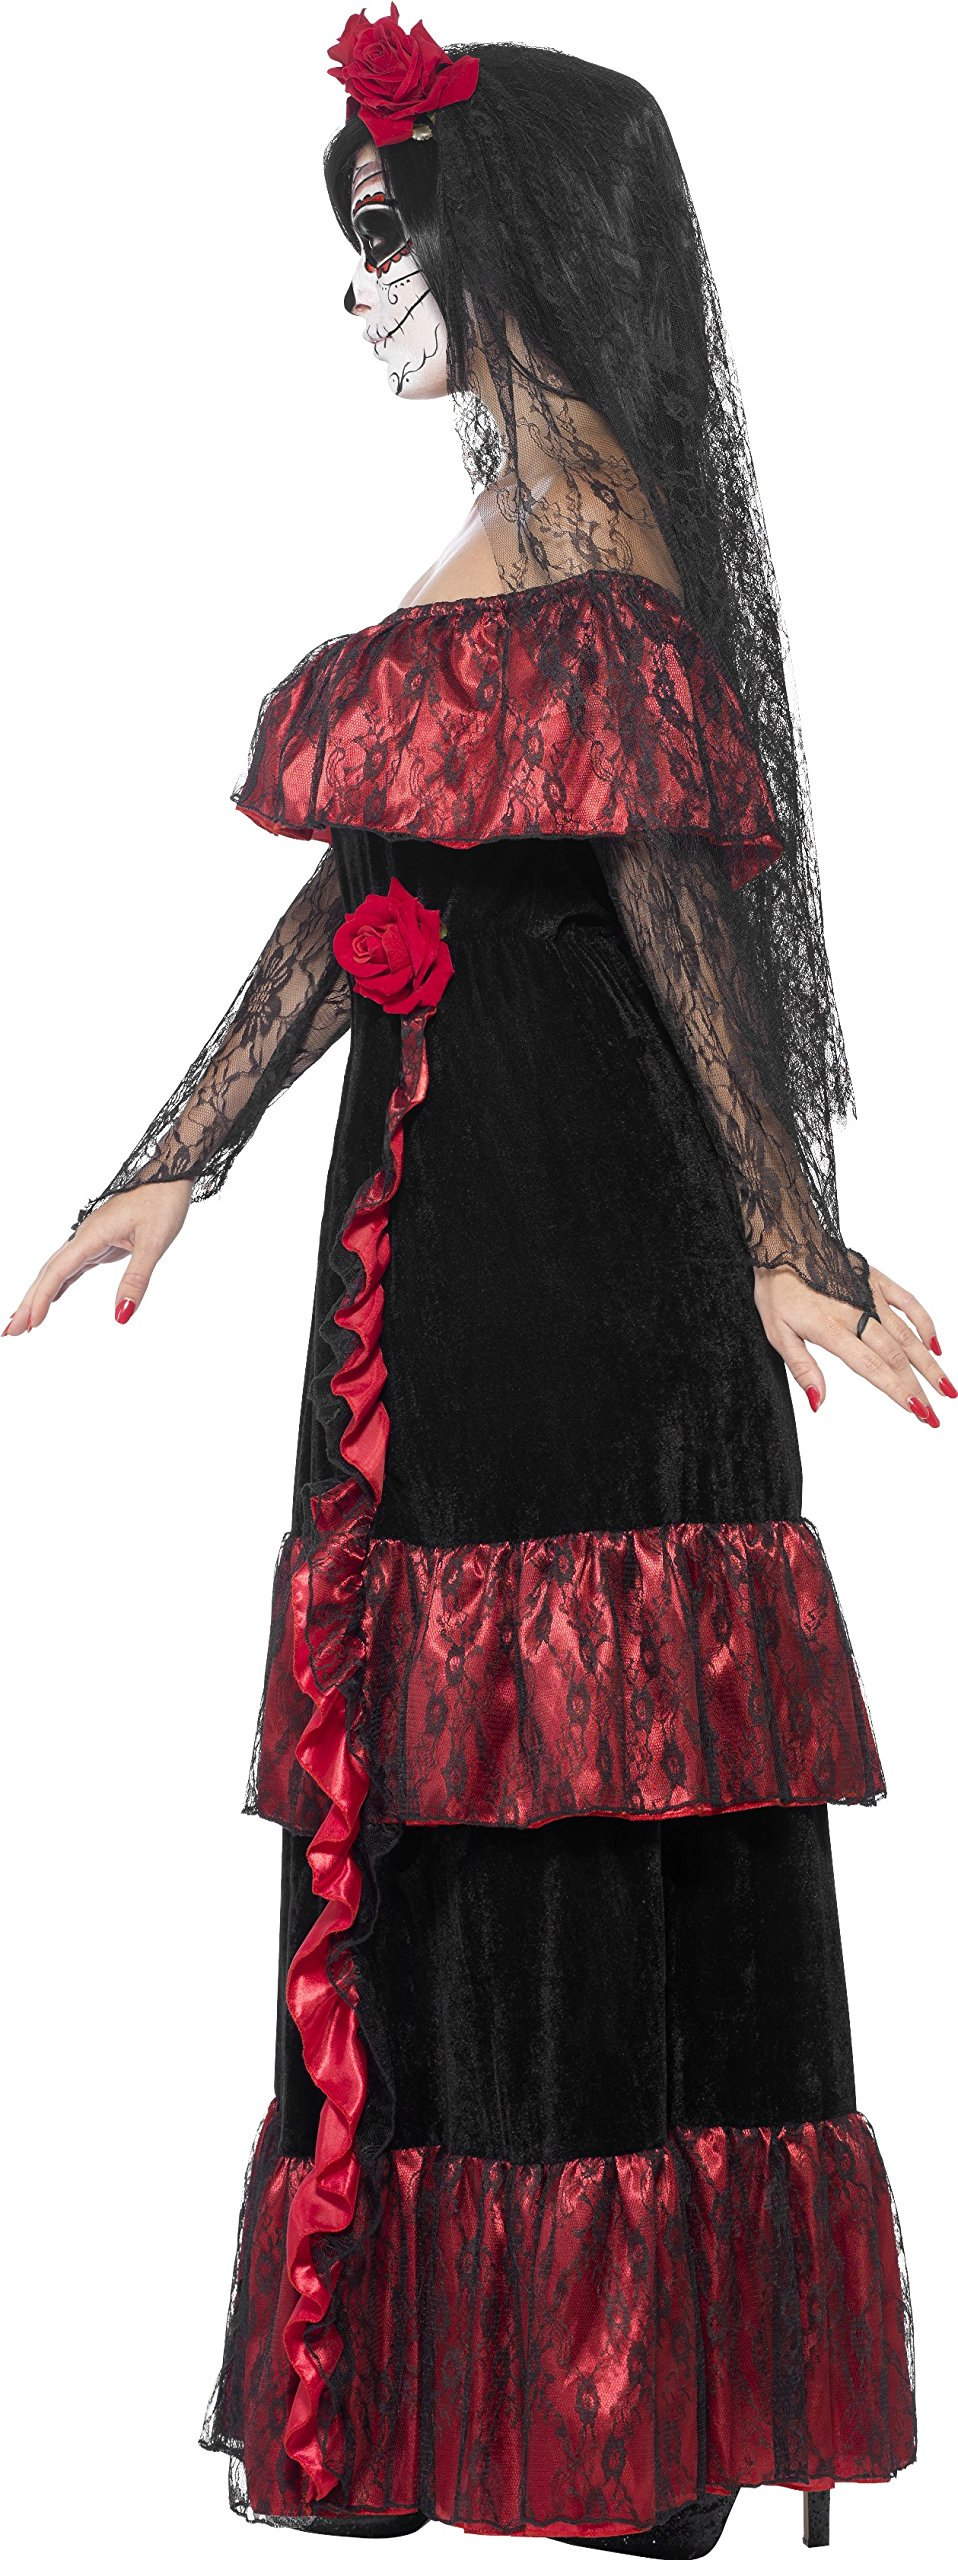 Smiffy's Women's Day The Dead Bride Costume, Dress Rose Veil, Day The Dead, Halloween, Size 10-12, 43739 by Smiffy's (Image #3)